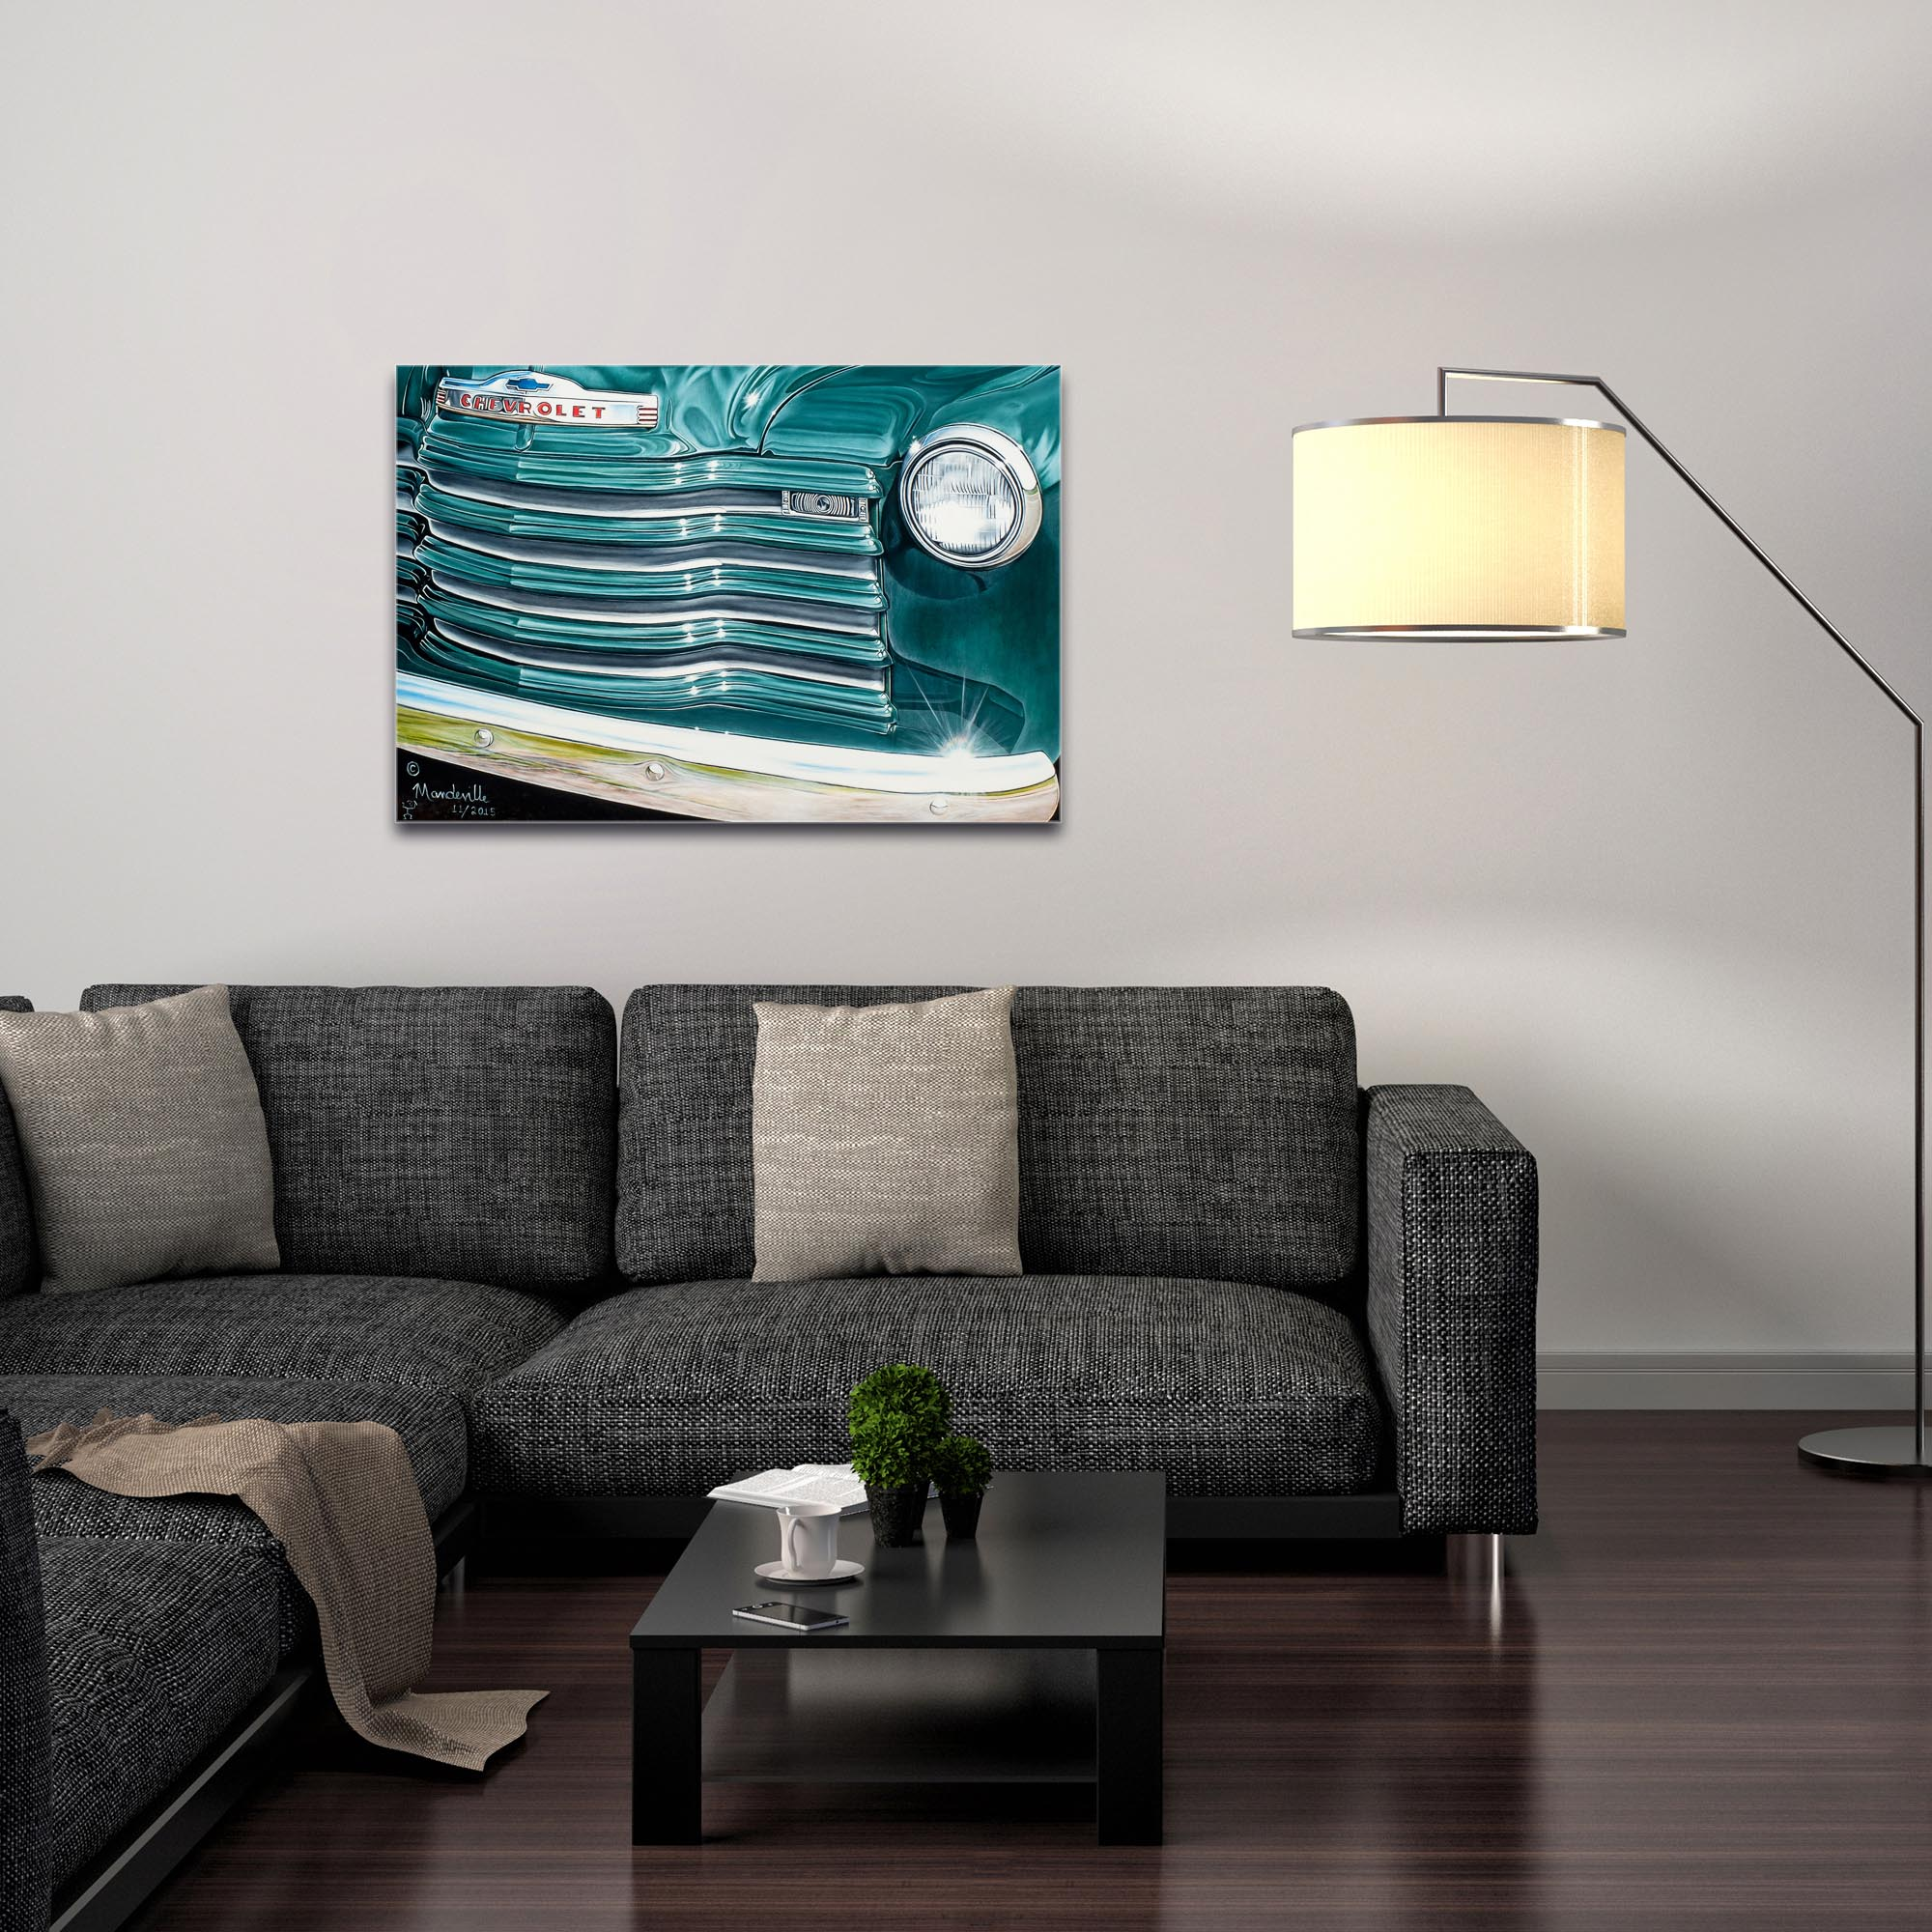 Americana Wall Art 'Grandpaz' - Classic Cars Decor on Metal or Plexiglass - Image 3